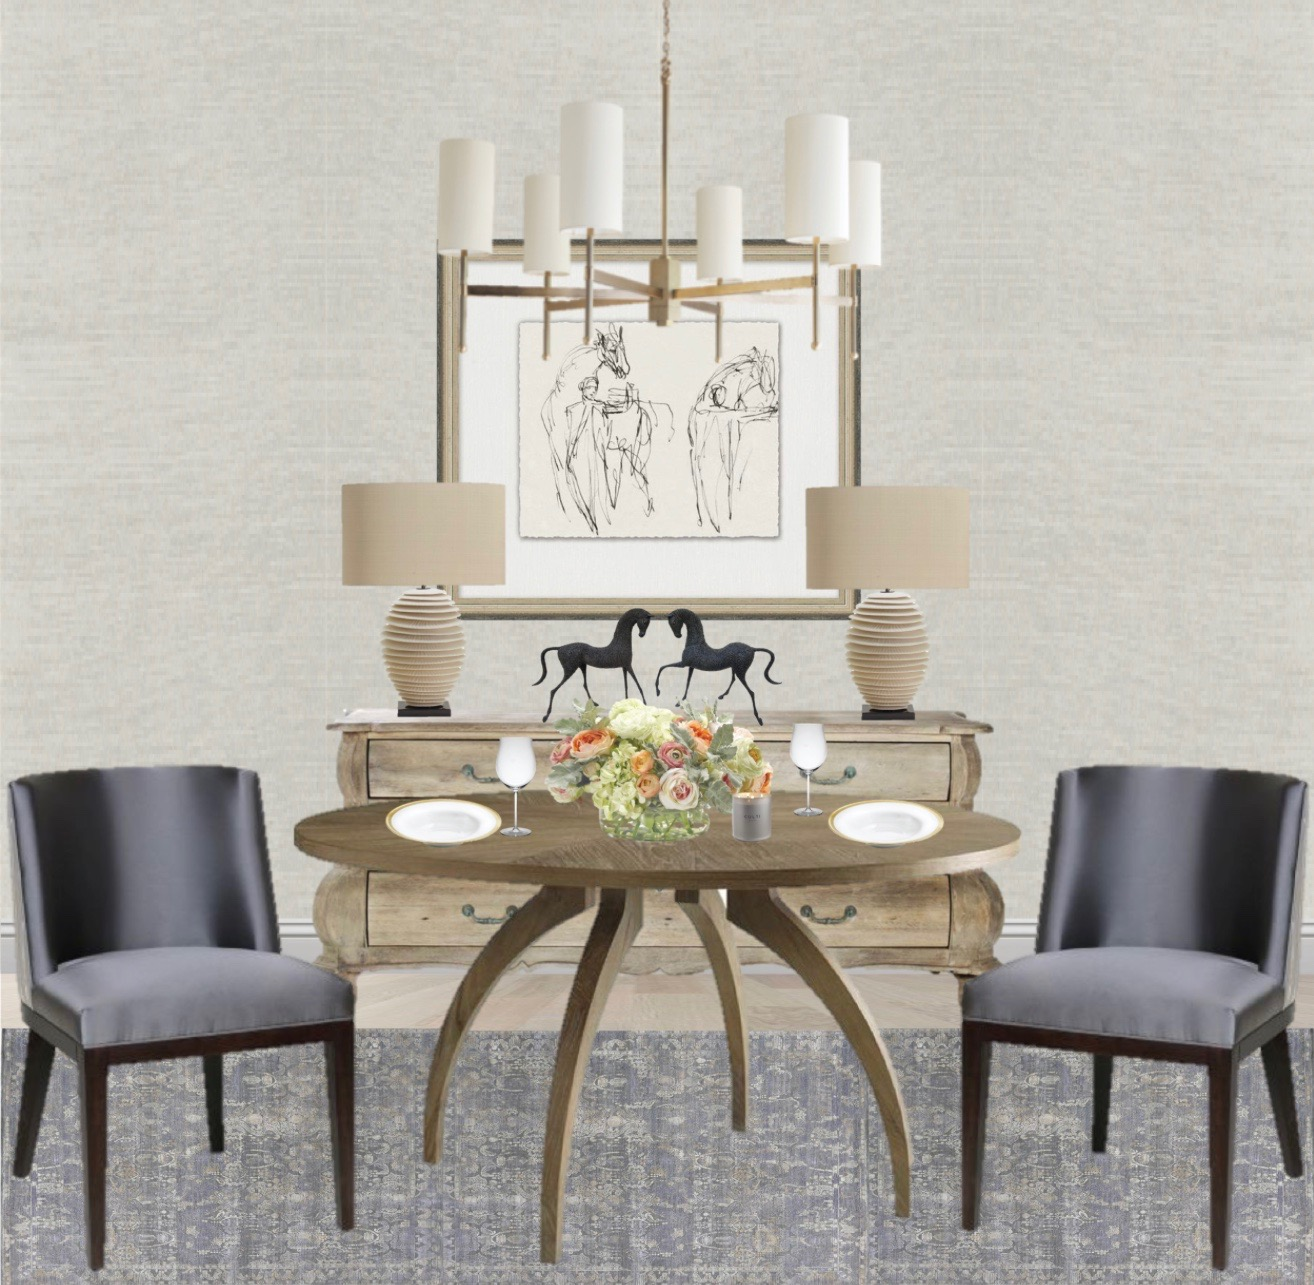 Rustic Chic Dining Room by Synonymous — Synonymouss.com.jpg